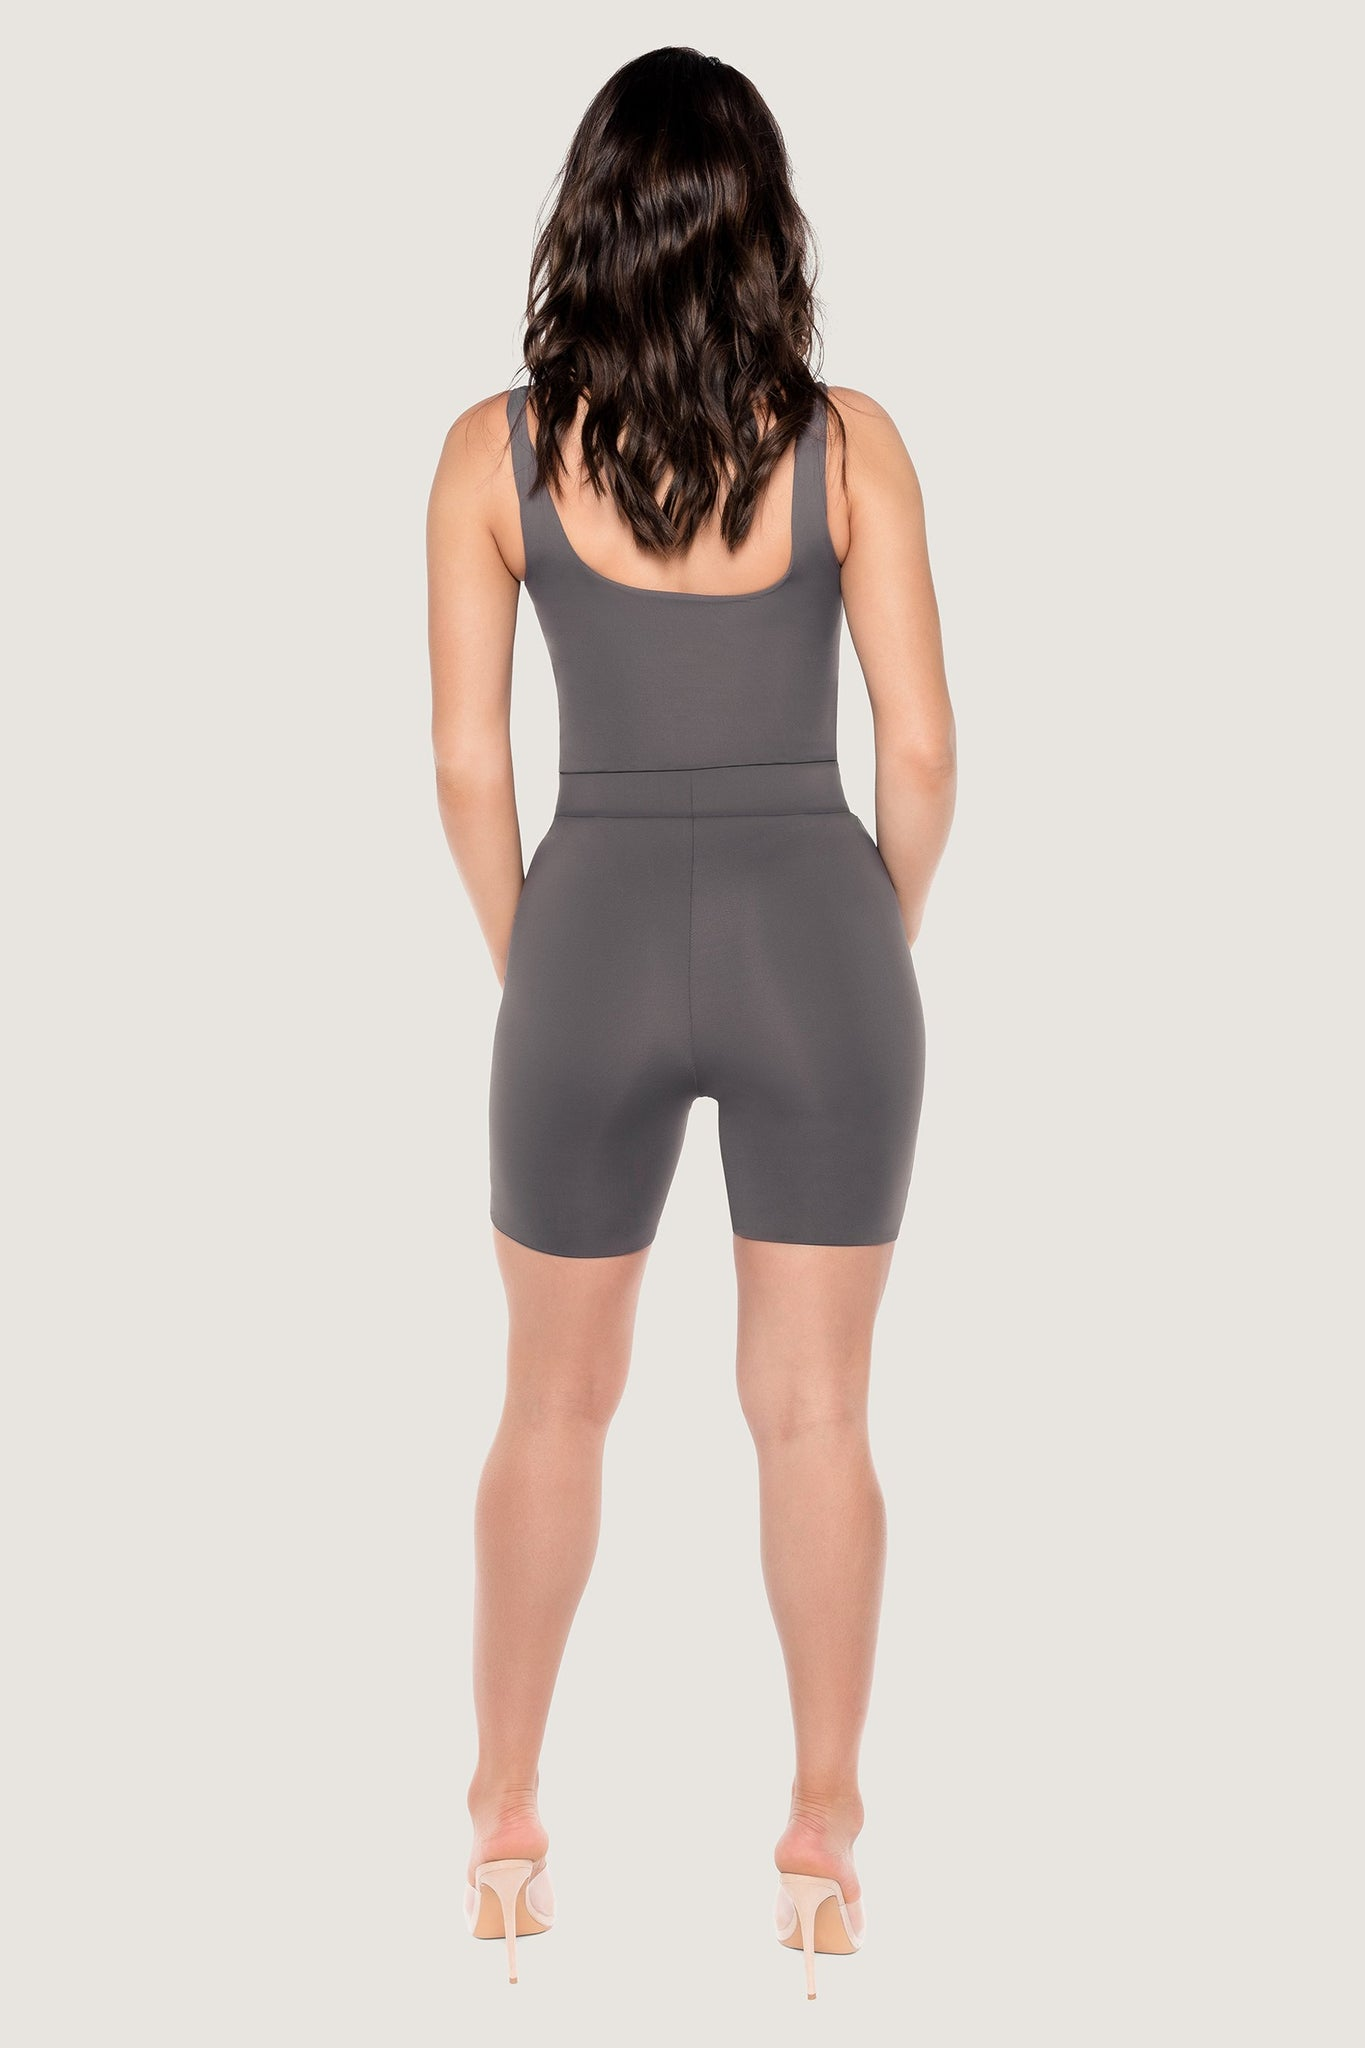 Cameryn High Waisted Bike Short - Charcoal - MESHKI